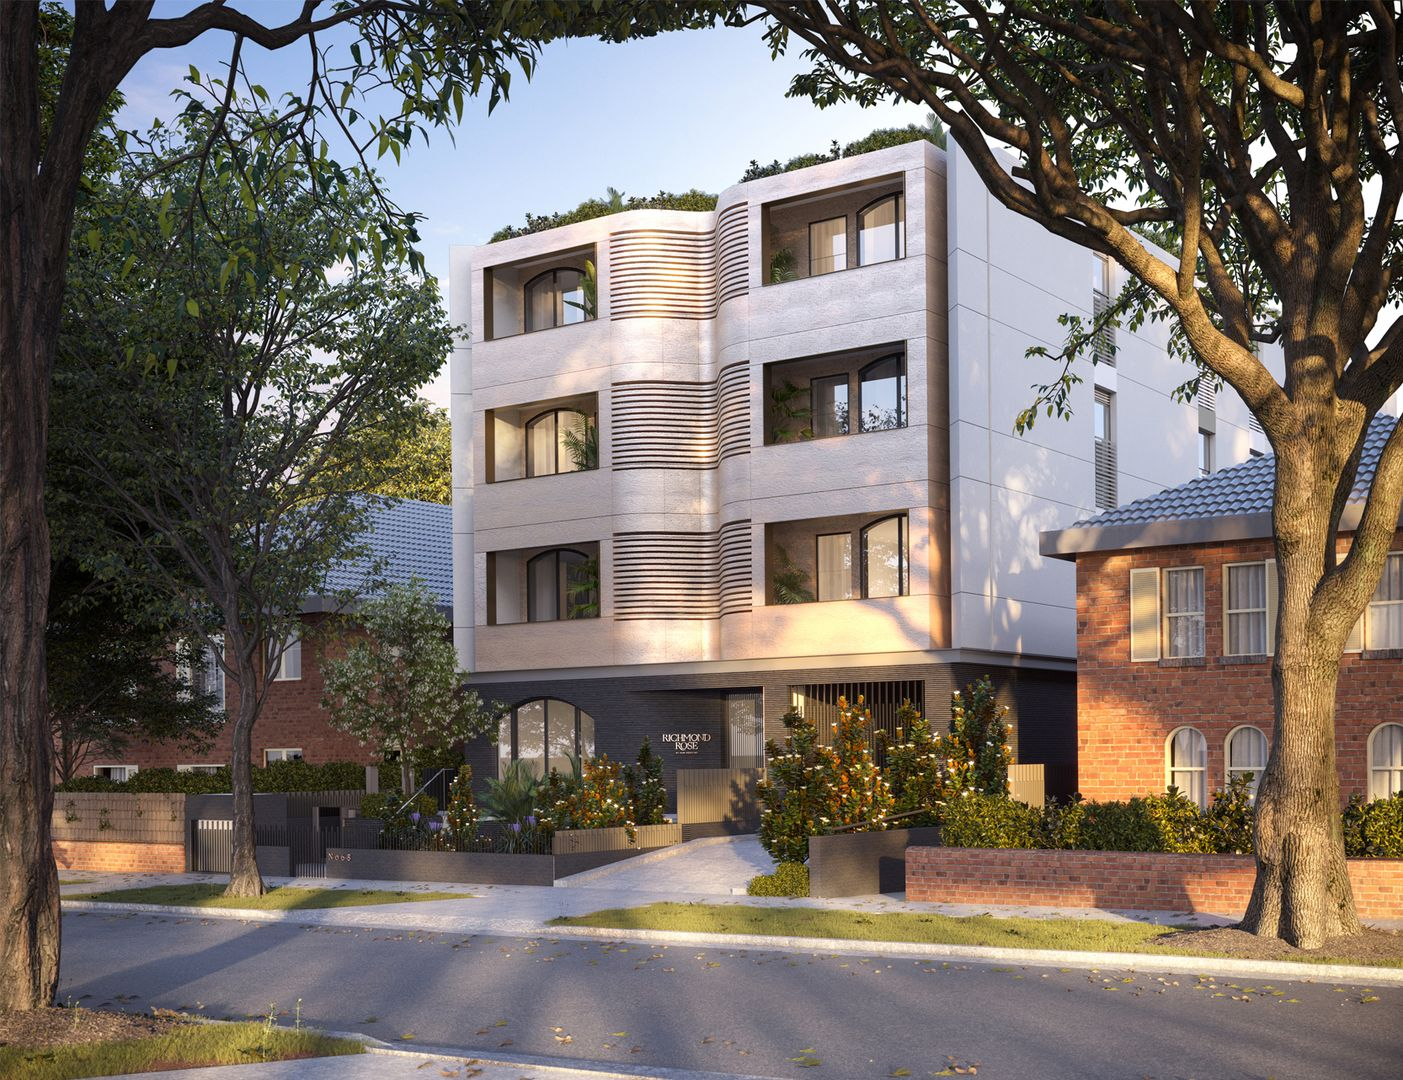 6-8 Richmond Road, Rose Bay, NSW 2029, Image 0